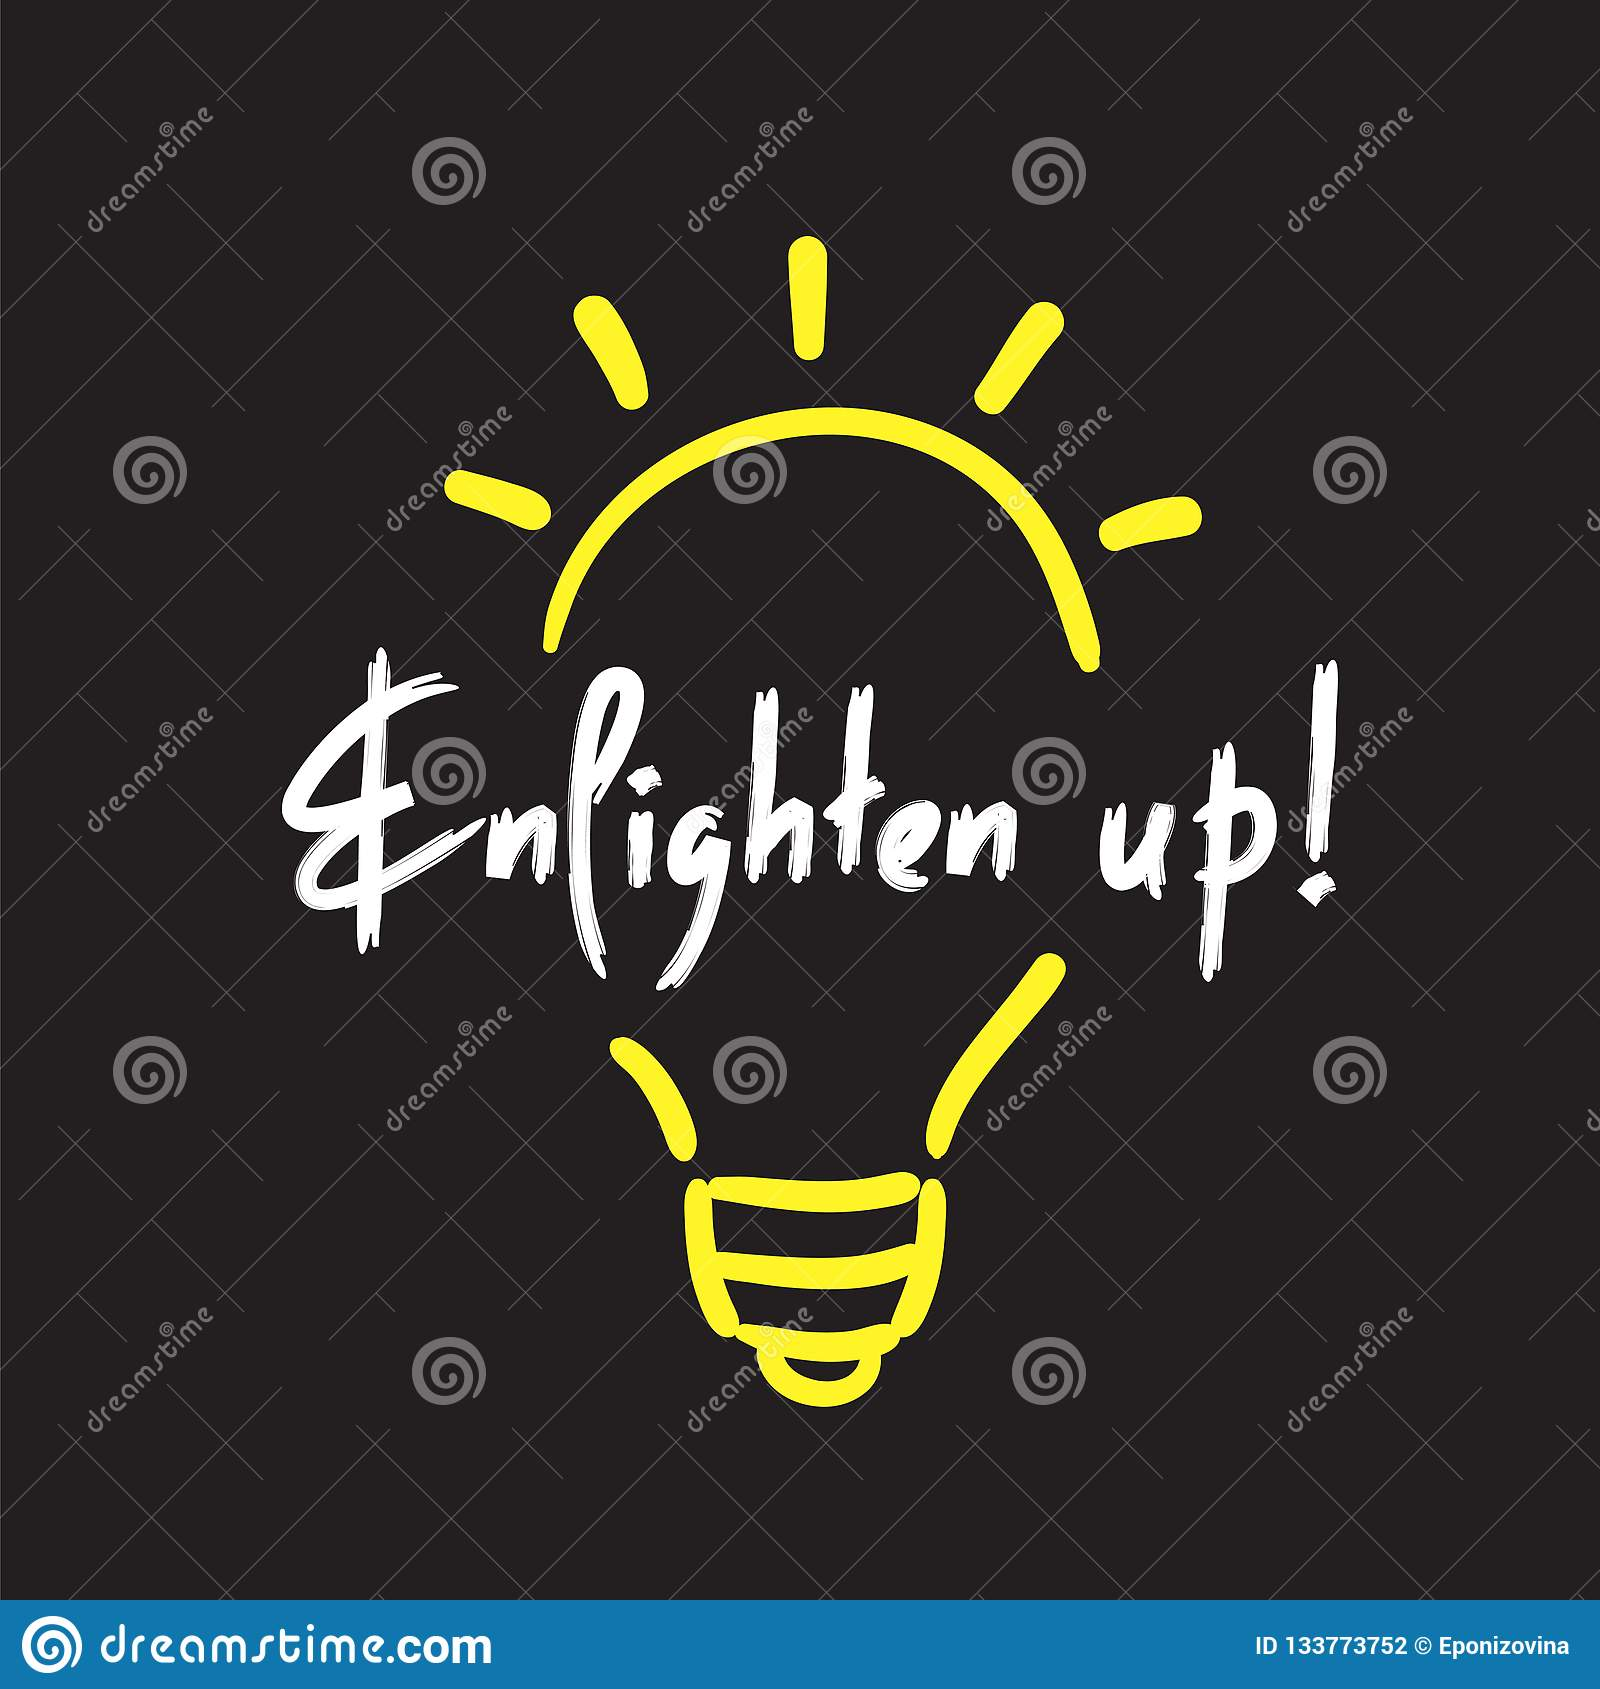 Enlighten up - simple inspire and motivational quote. English idiom, lettering. Print for inspirational poster, t-shirt, bag, cups